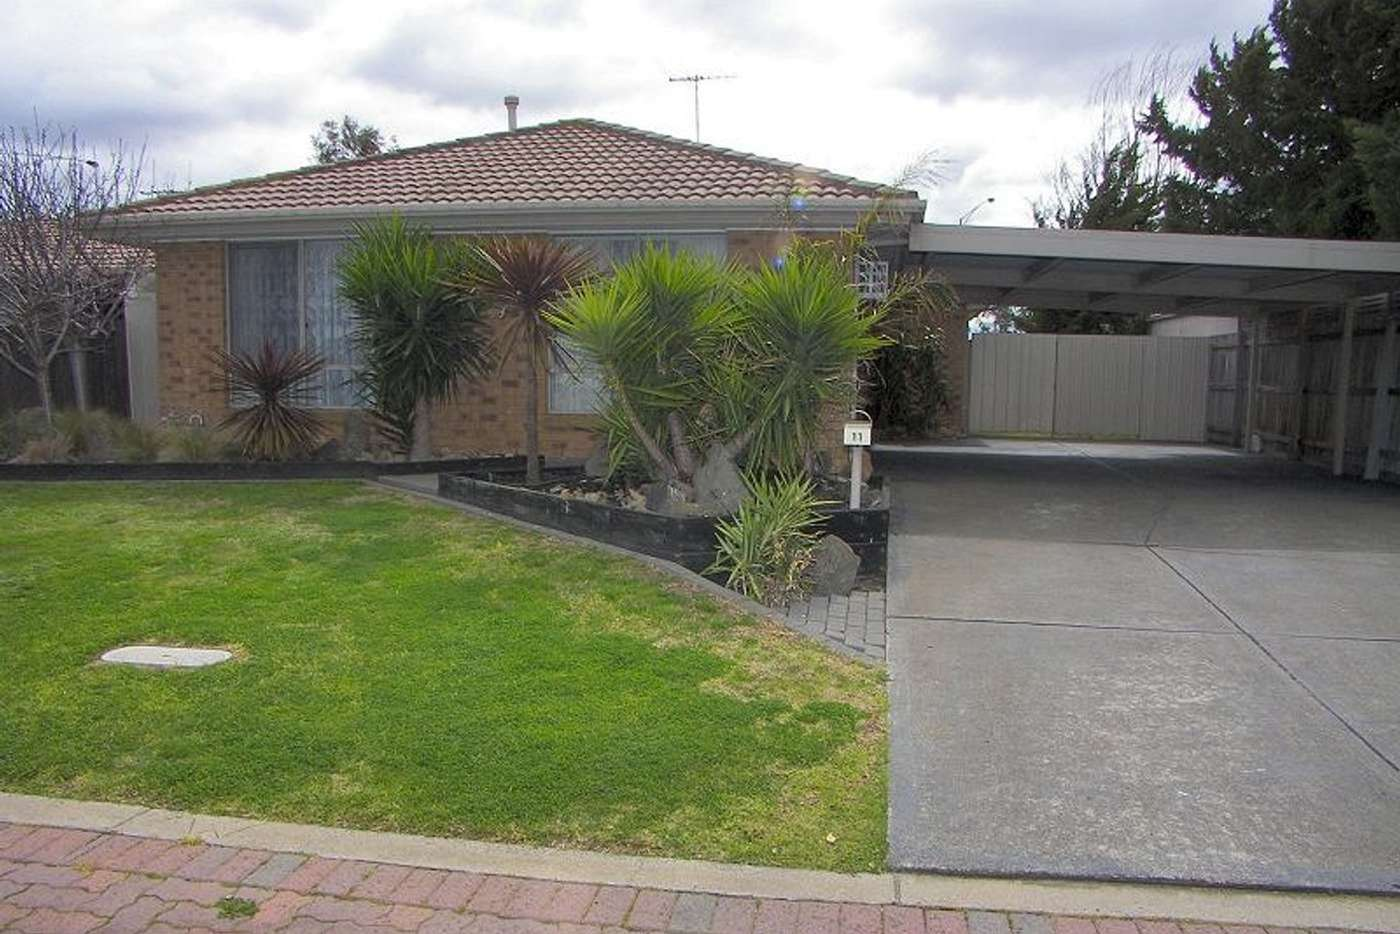 Main view of Homely house listing, 11 Marlo Square, Wyndham Vale VIC 3024